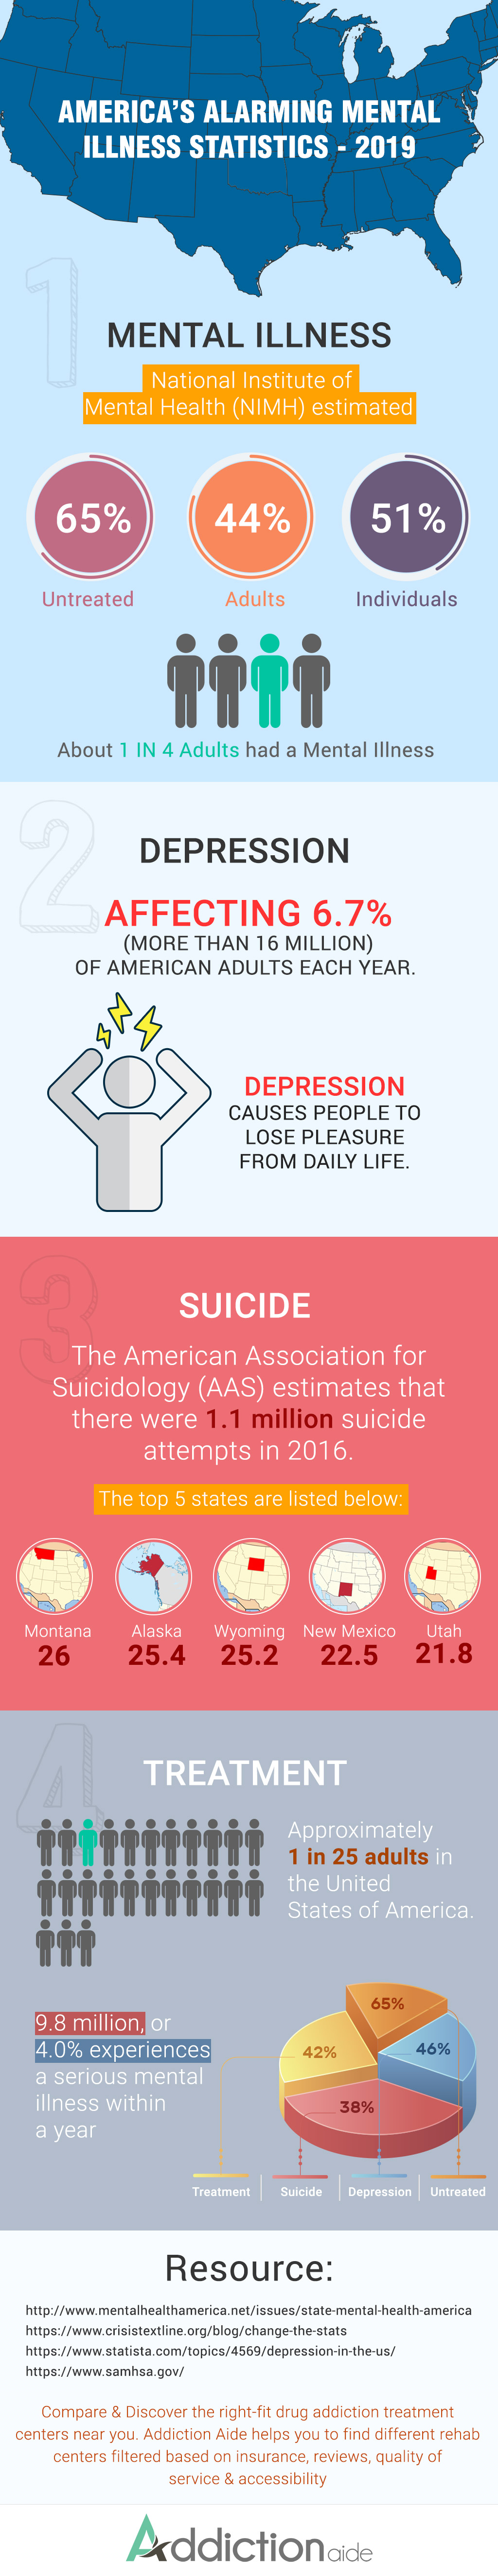 America's Alarming Mental Illness Statistics 2019